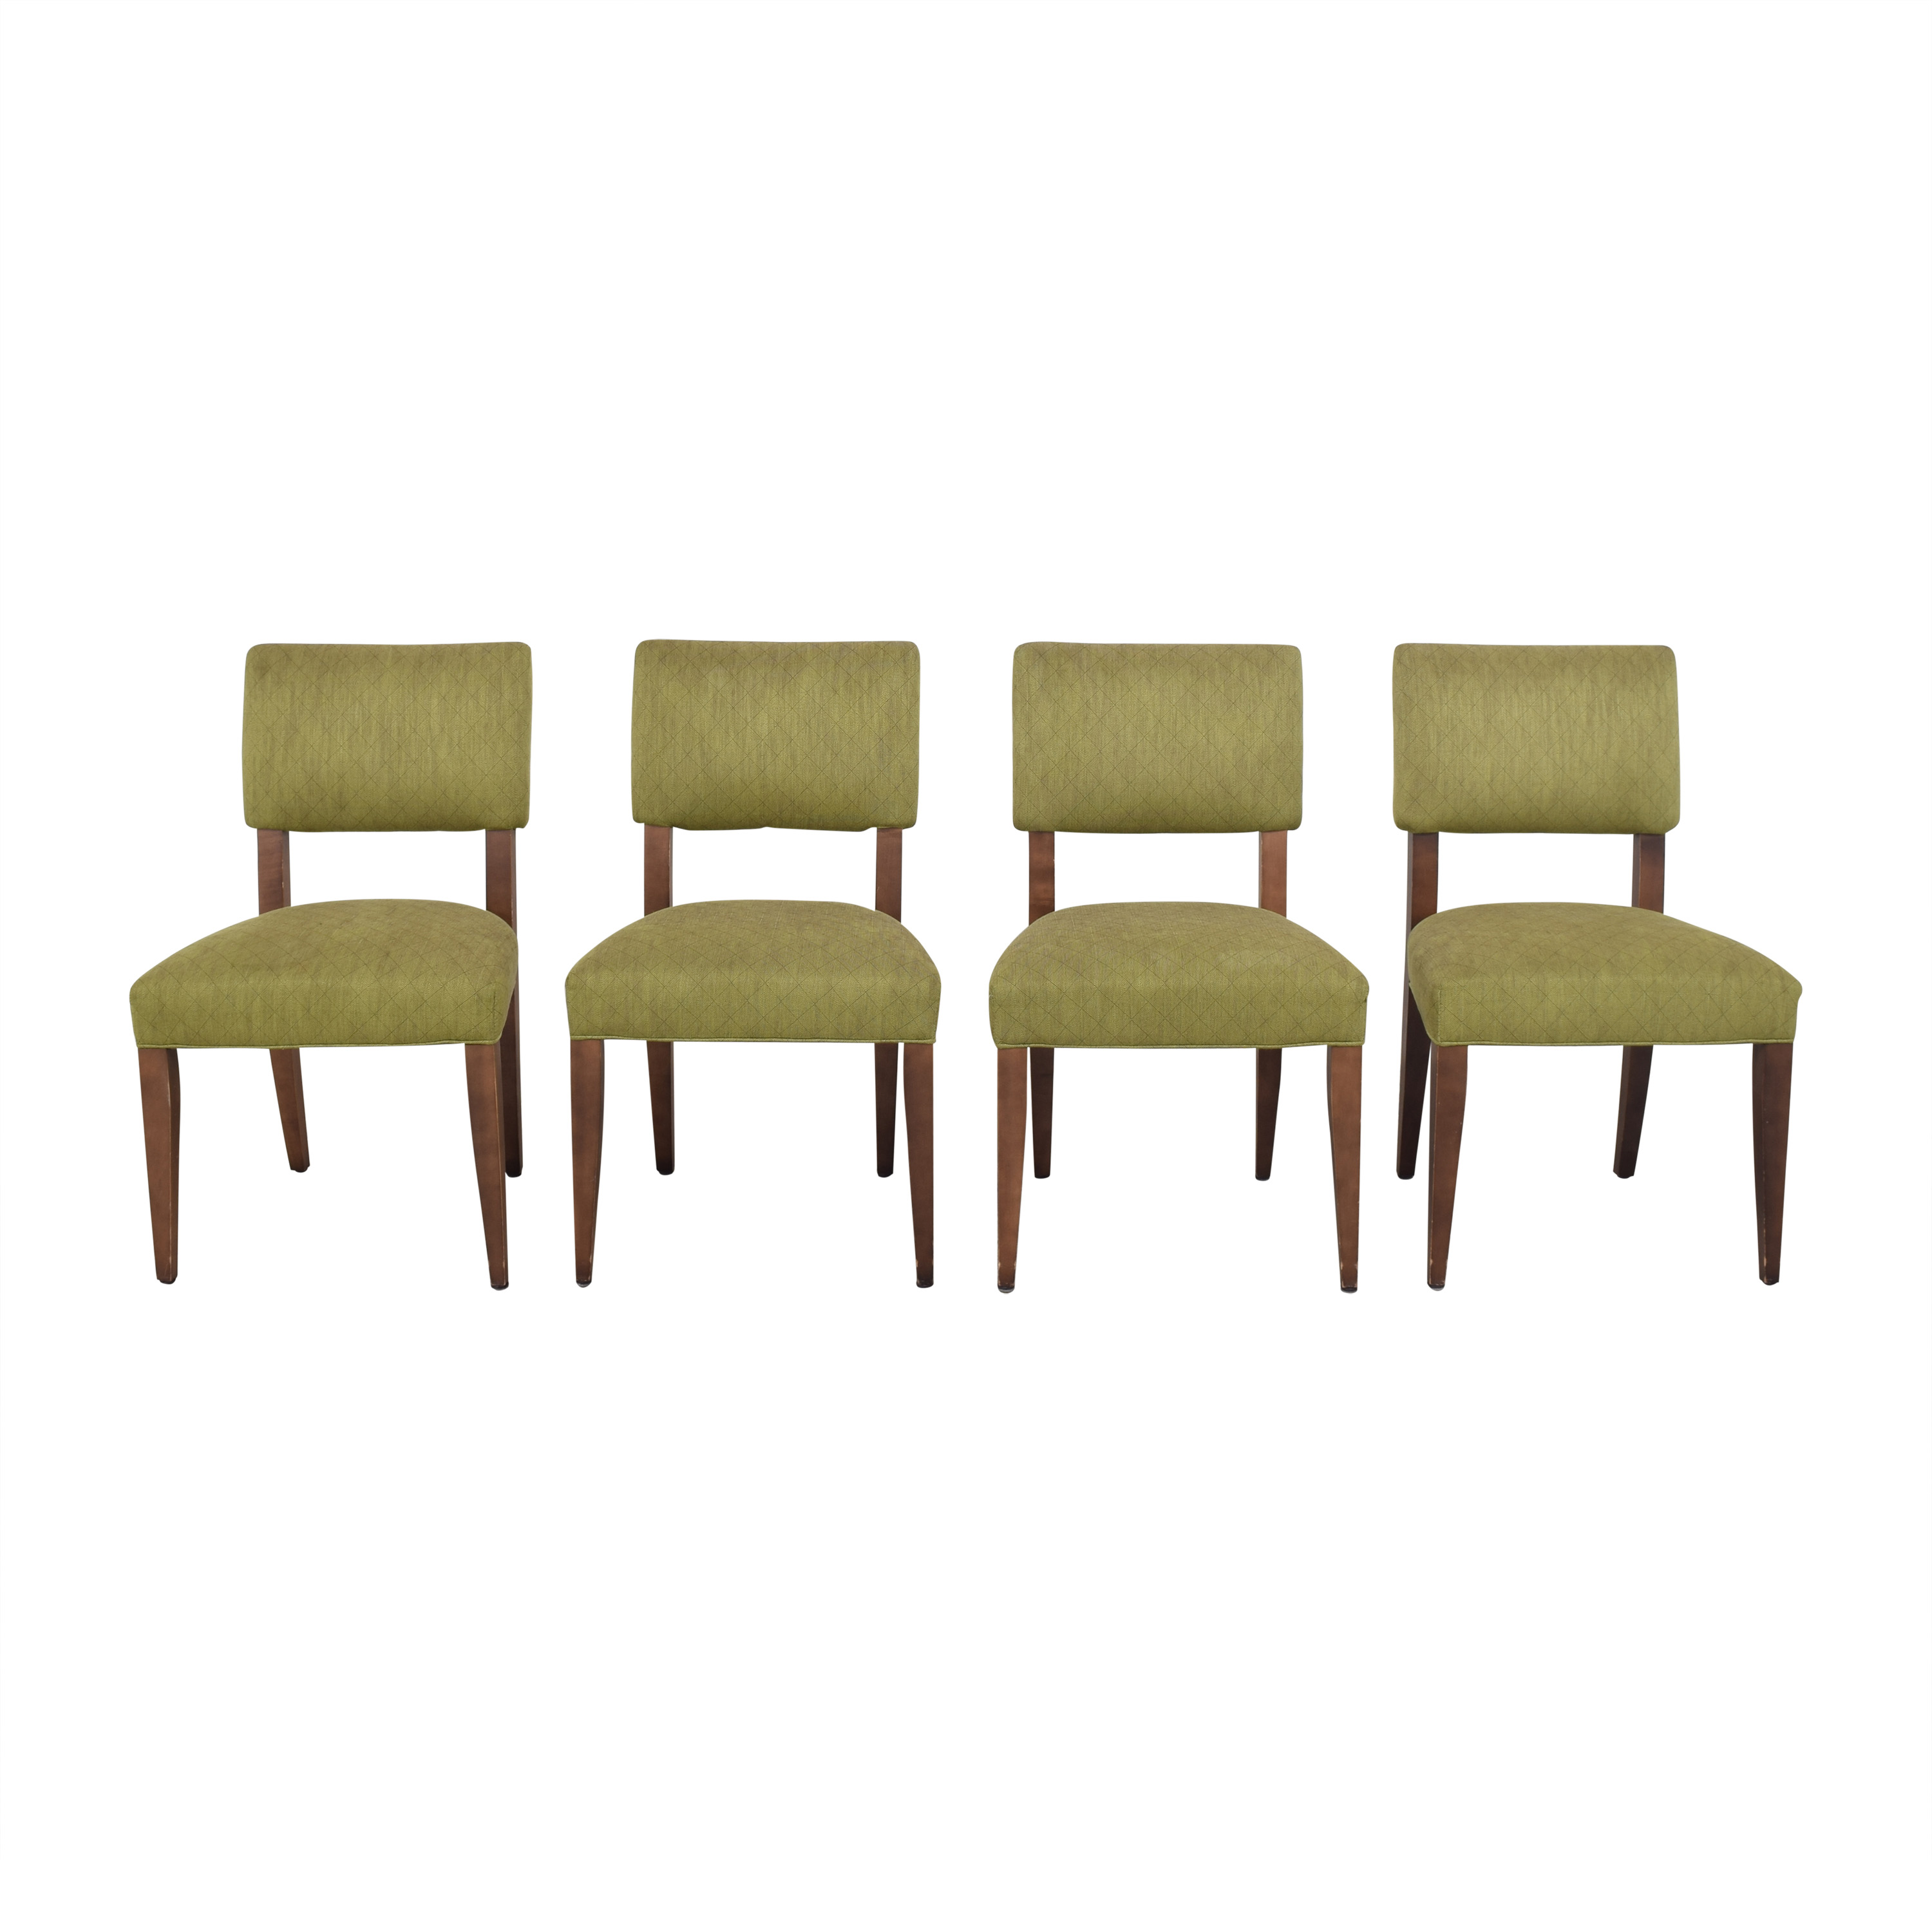 Crate & Barrel Crate & Barrel Cody Upholstered Dining Chairs price